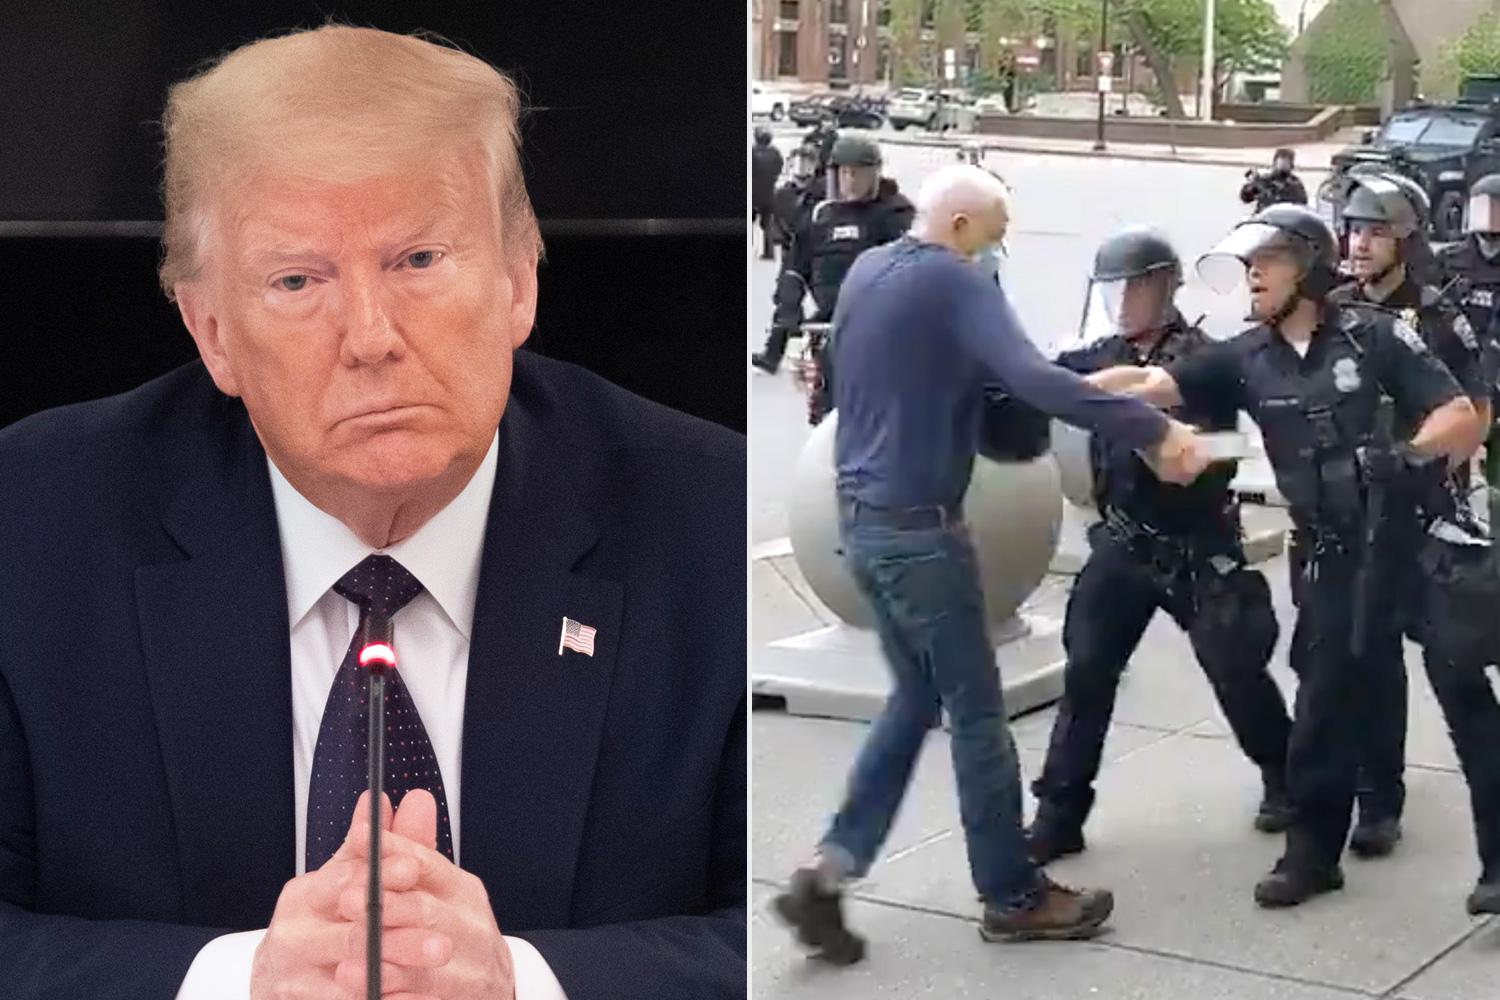 Martin Gugino - Elderly Protester Assaulted By Police Responds To Donald Trump's Theory That He 'Set Up' His Attackers!